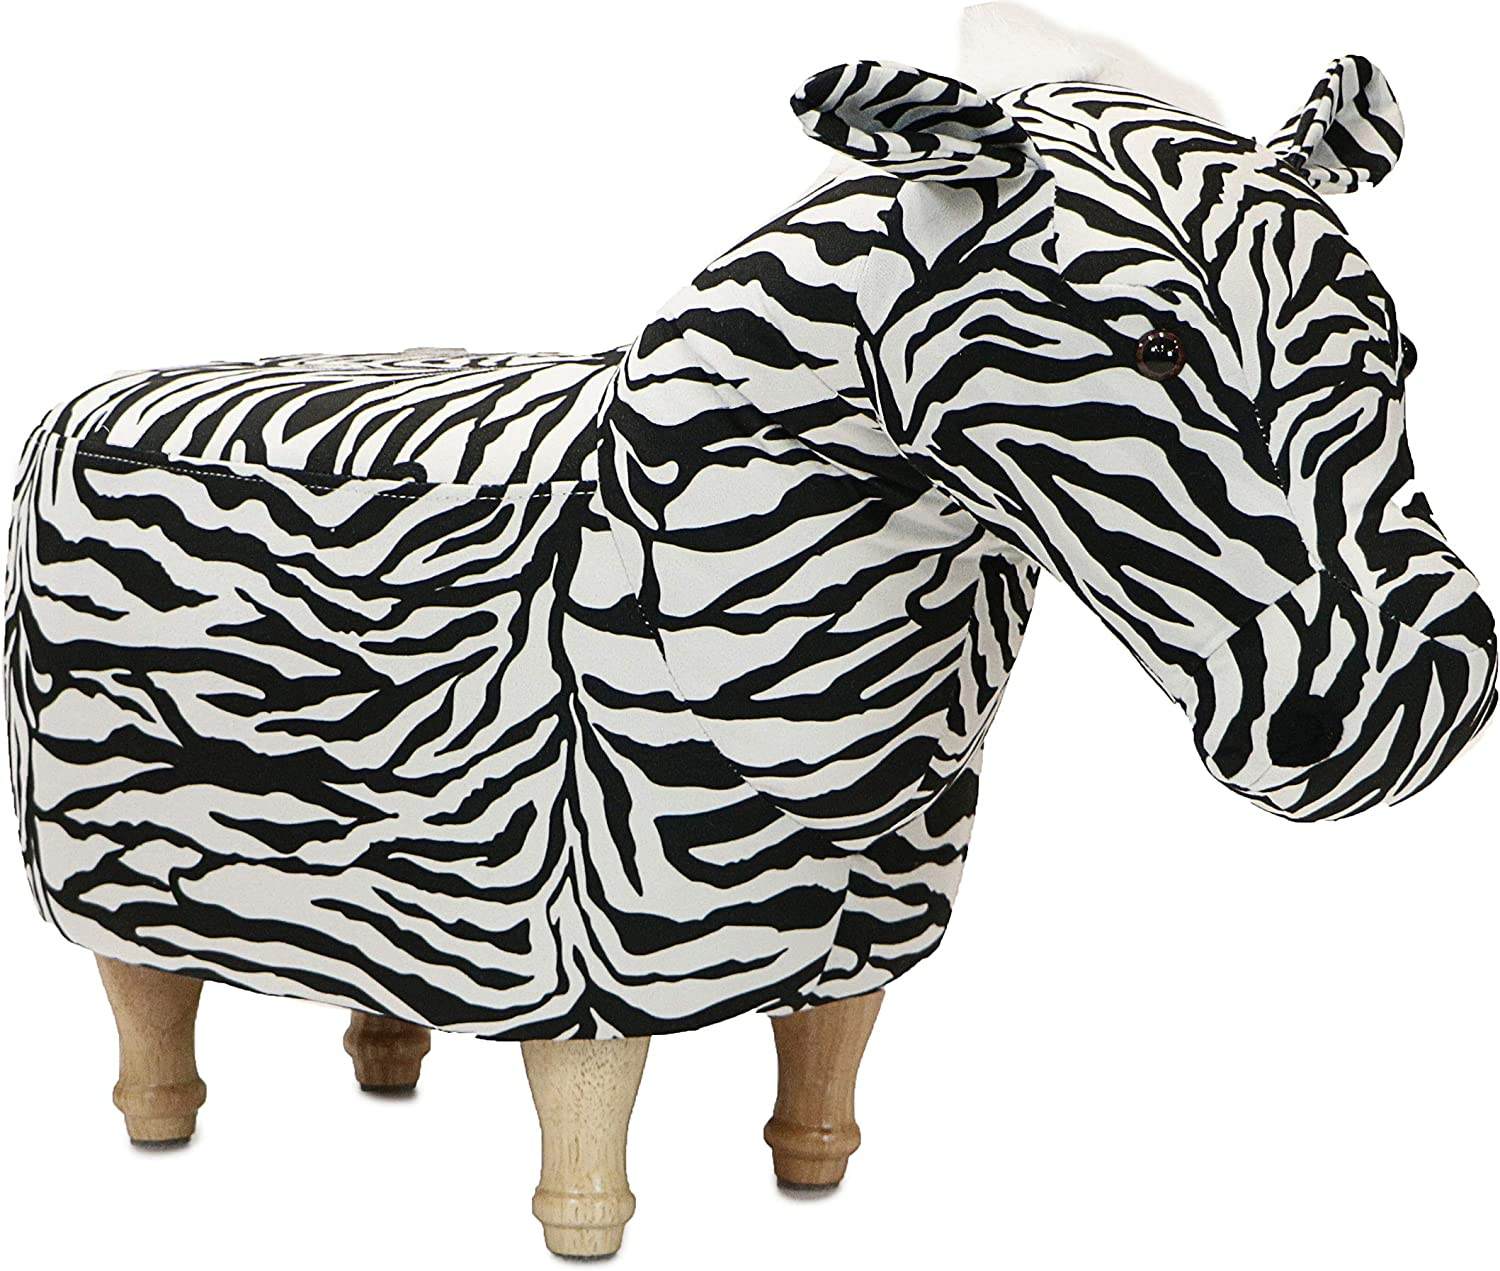 "Critter Sitters Black/White 14"" Seat Height Animal Ottoman Zebra-Durable Spindle Legs-Easy to Clean Material-Footstool-Perfect for Kids, Living Rooms, Playrooms, Offices"